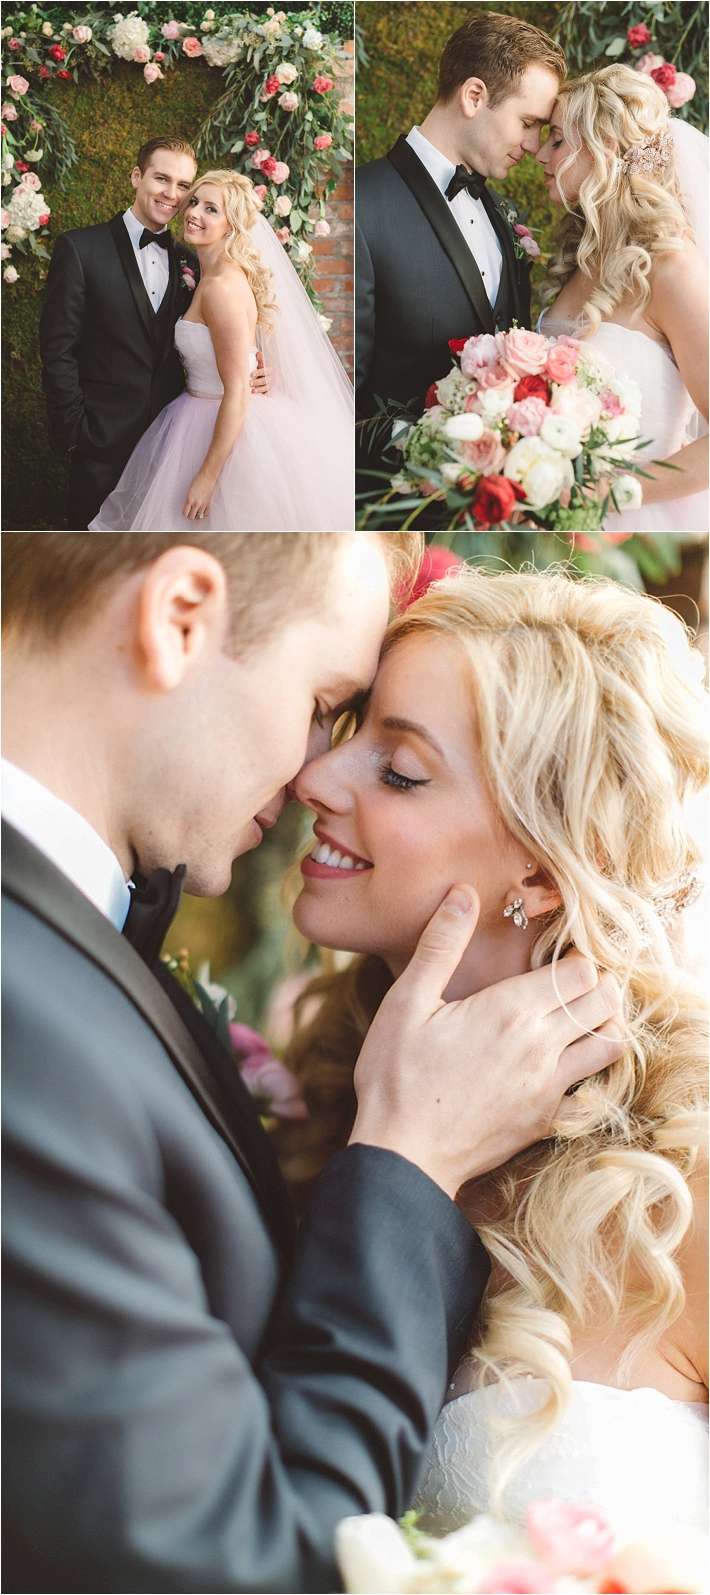 Stunning bride and groom portraits